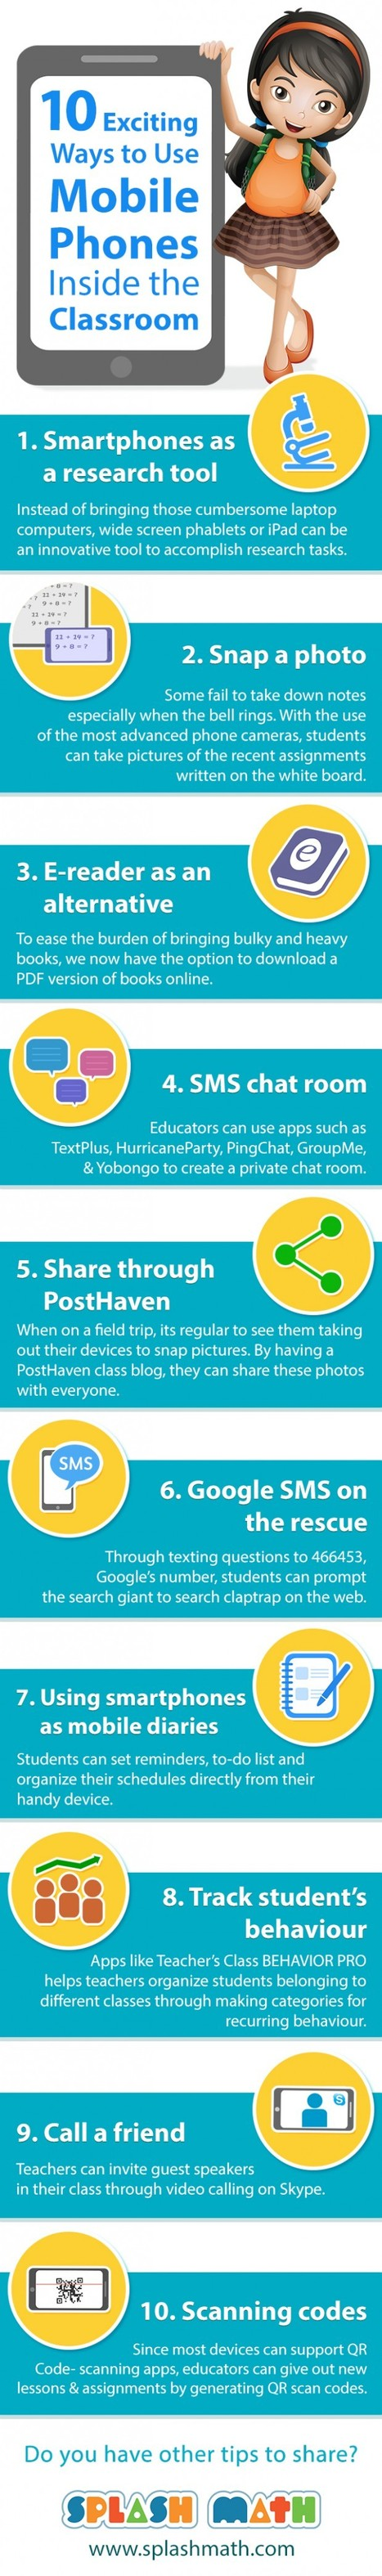 10 Exciting Ways to Use Mobile Phones In the Classroom Infographic | e-Learning Infographics | Passe-partout | Scoop.it